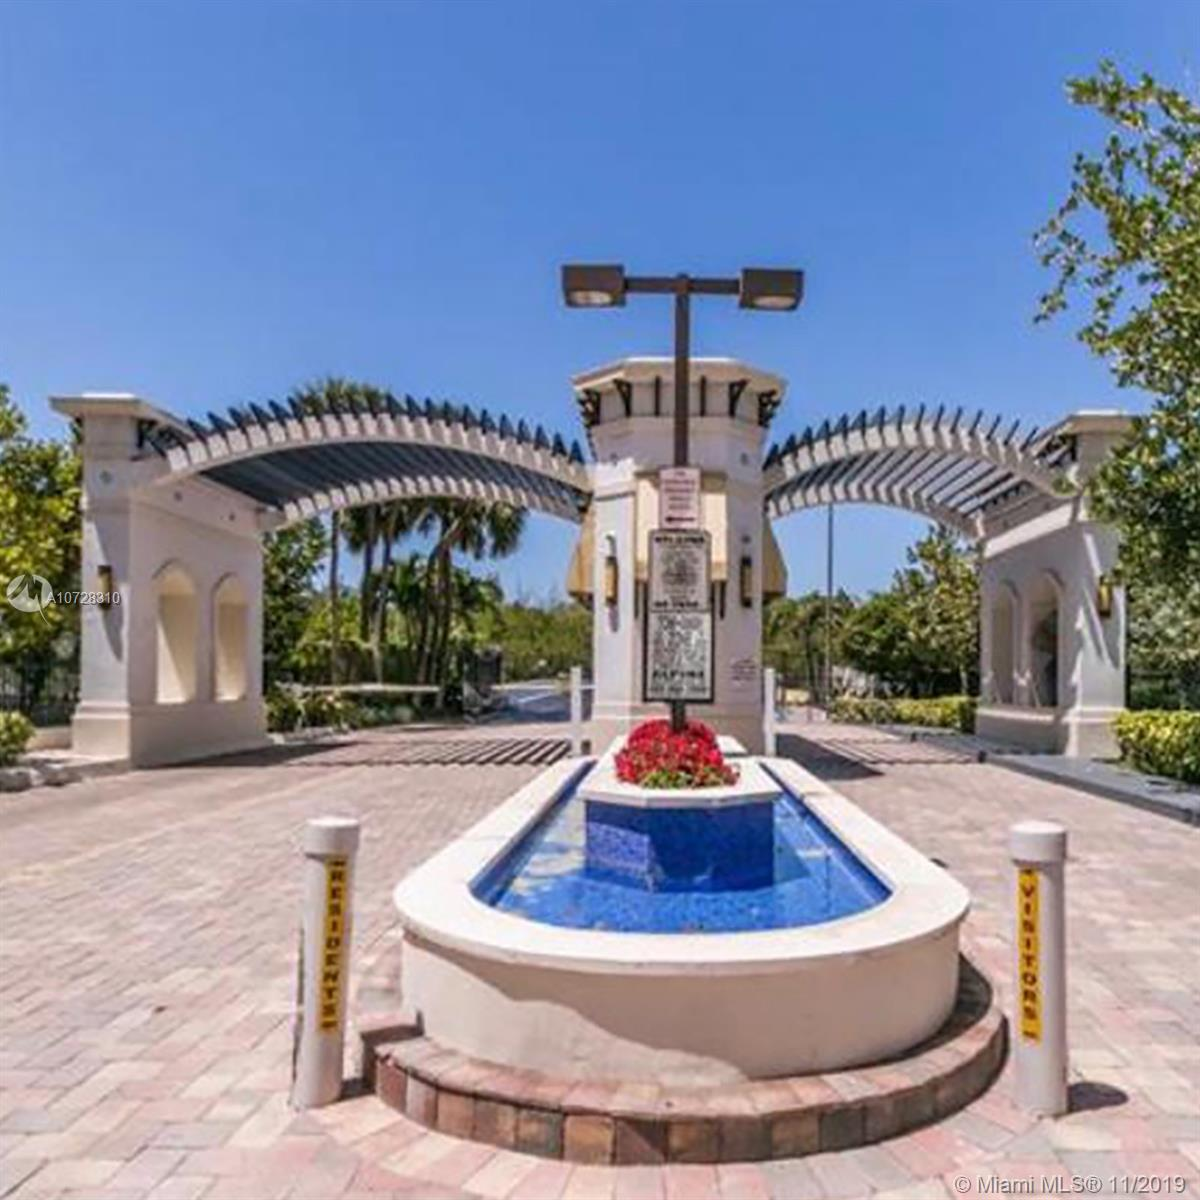 336  Poinciana Dr #1008 For Sale A10728310, FL